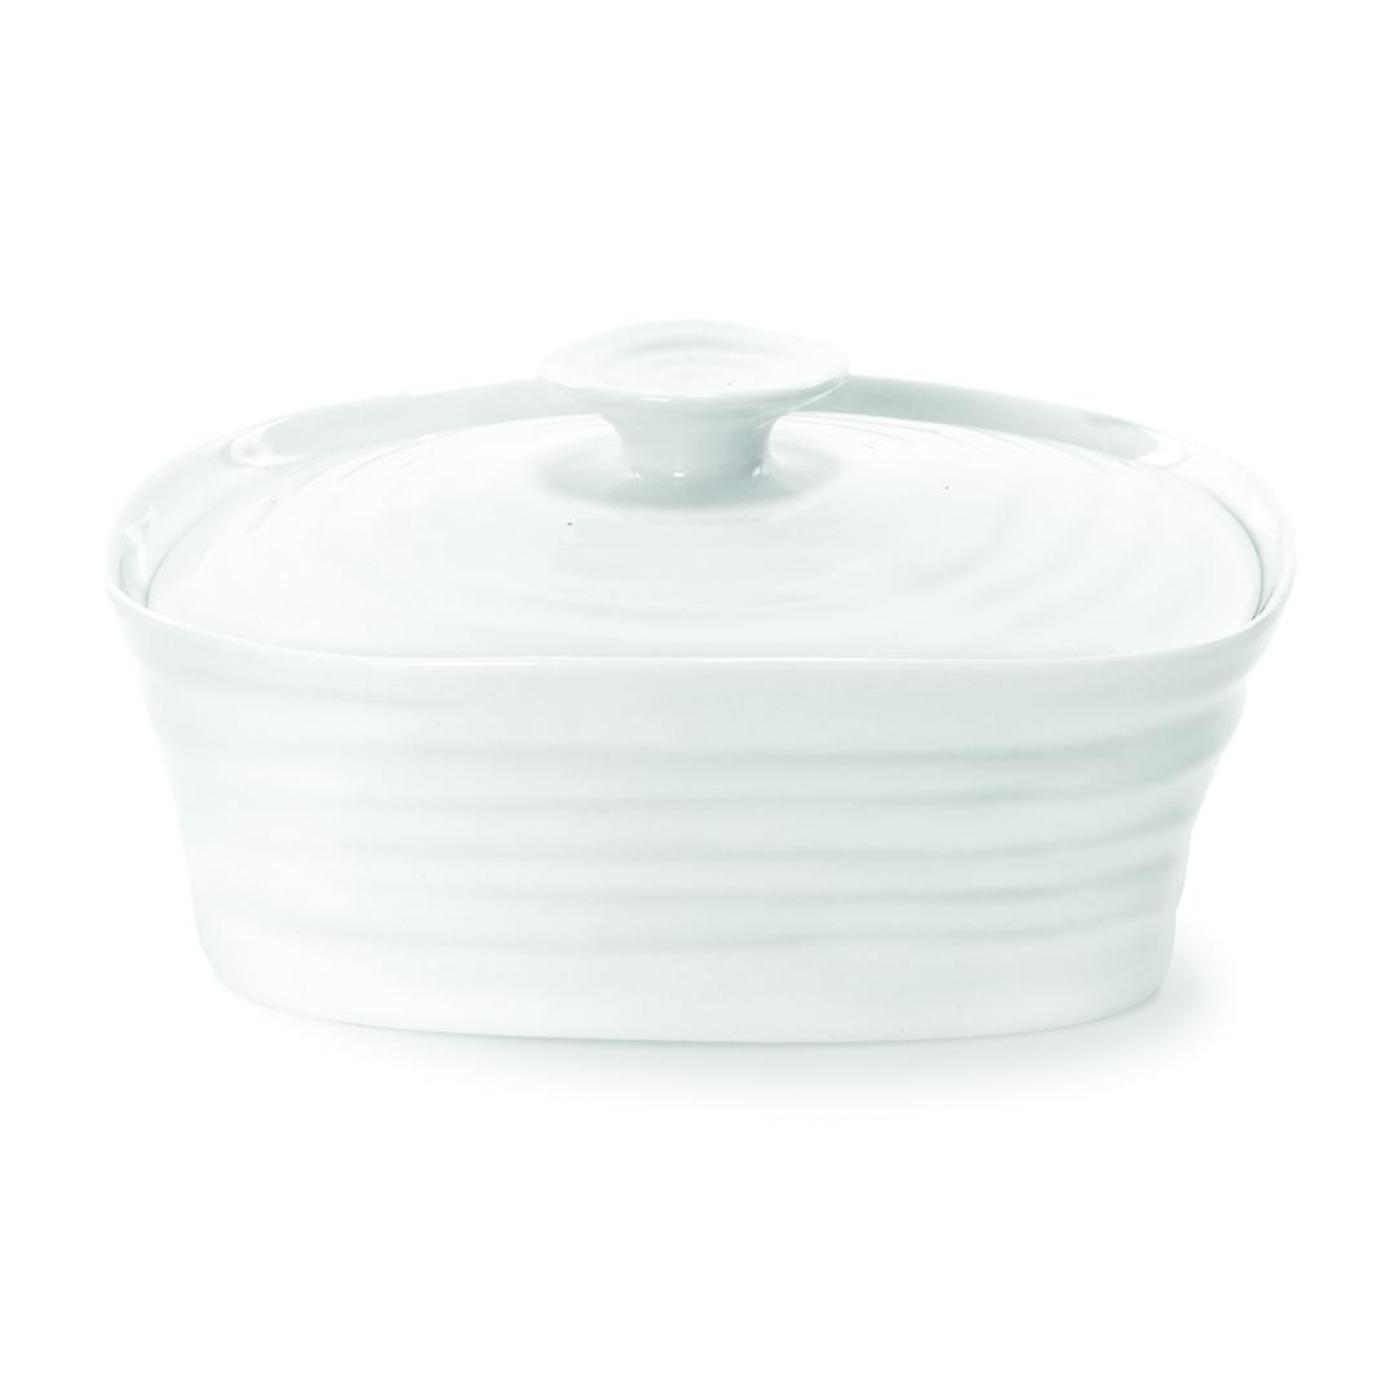 Portmeirion Sophie Conran White Covered Butter image number 0